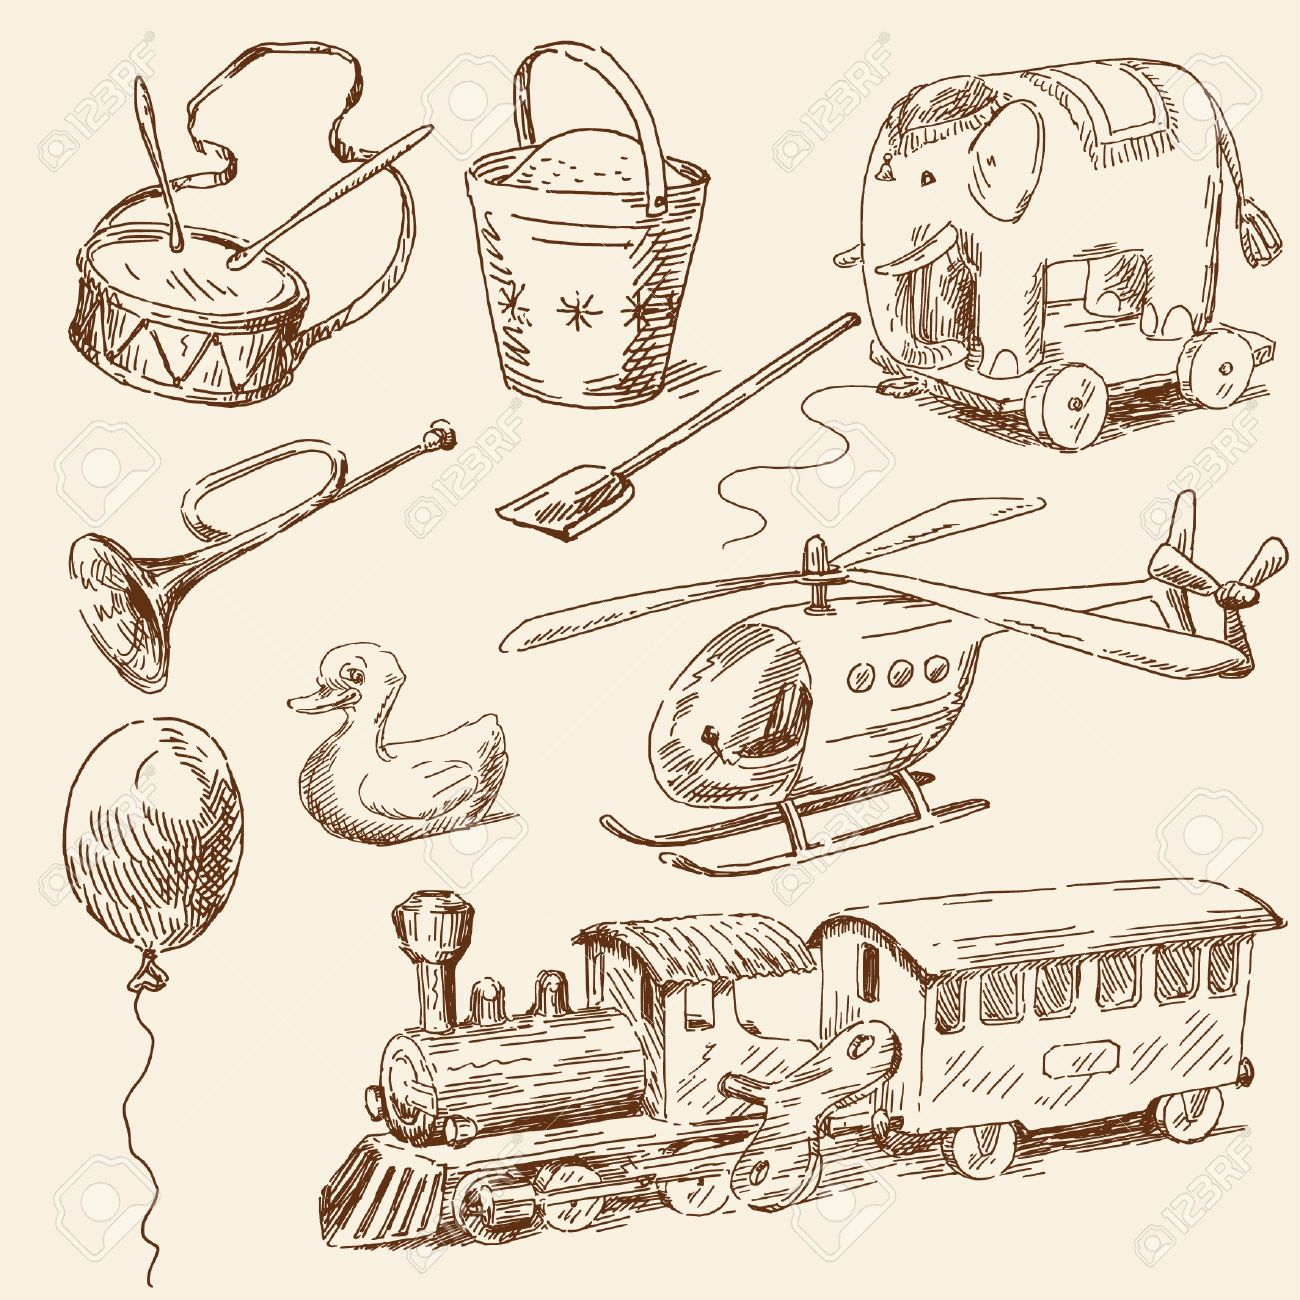 hand drawn toys collection - 14097765